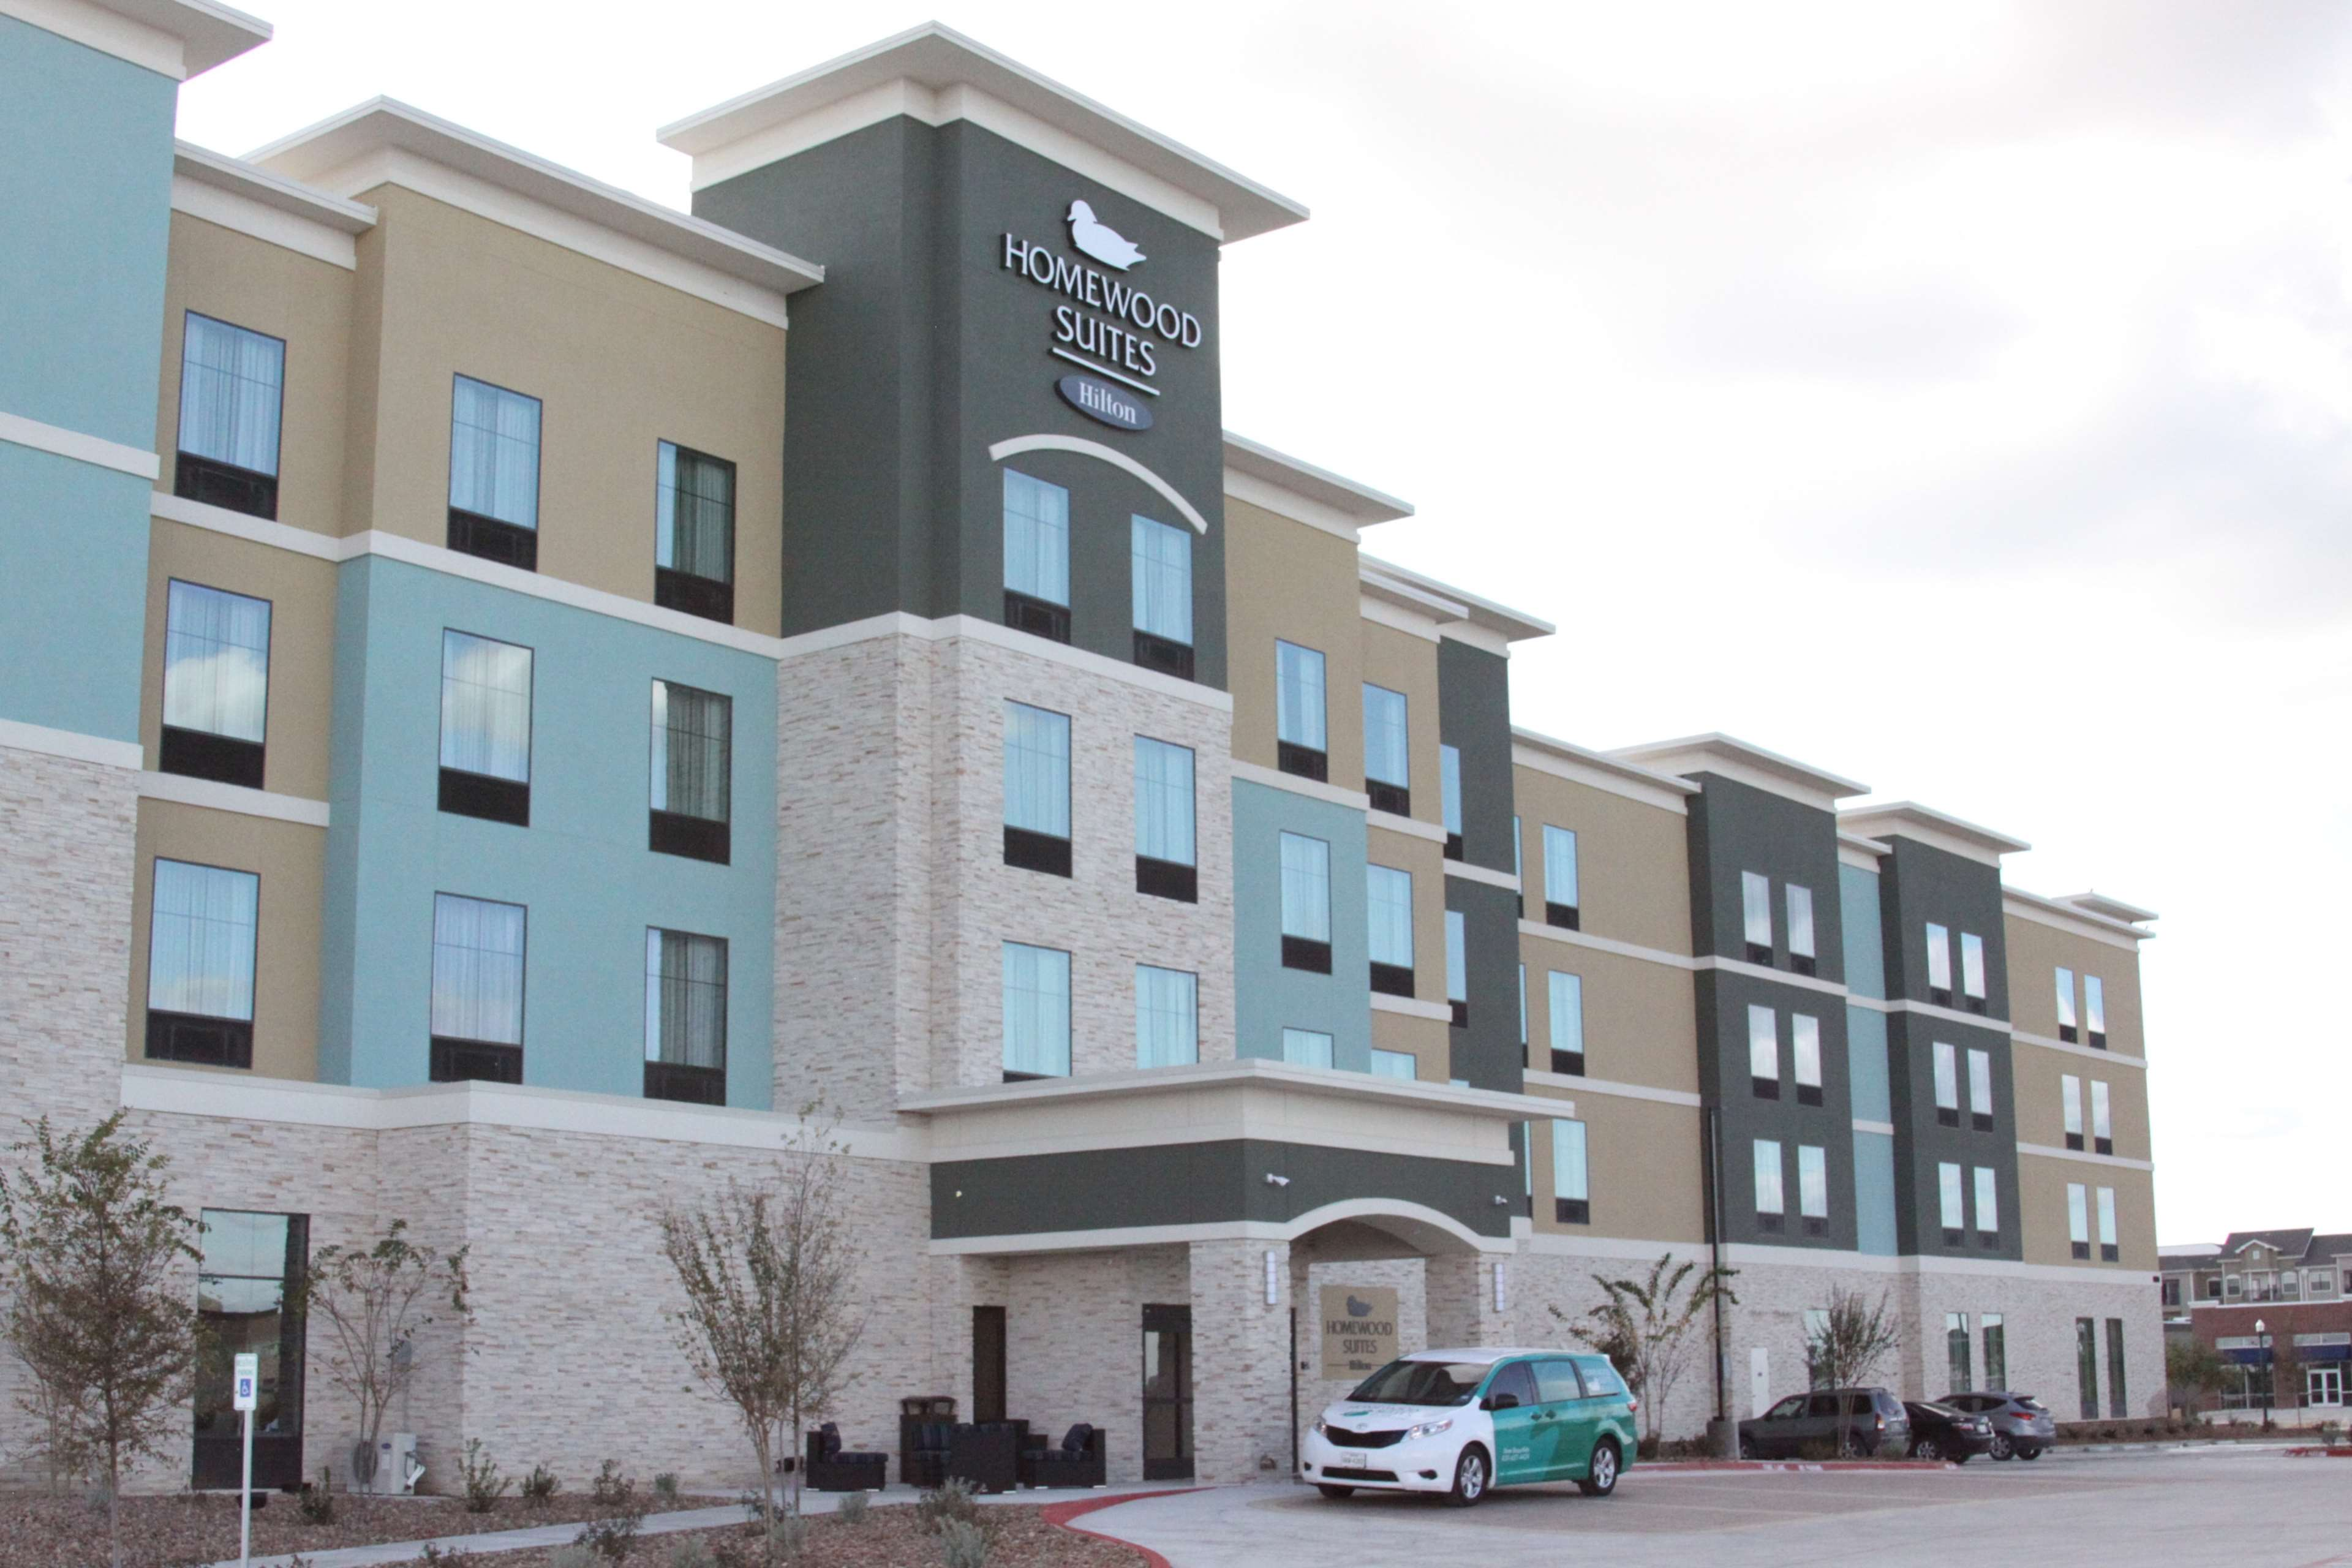 Homewood Suites by Hilton New Braunfels image 9